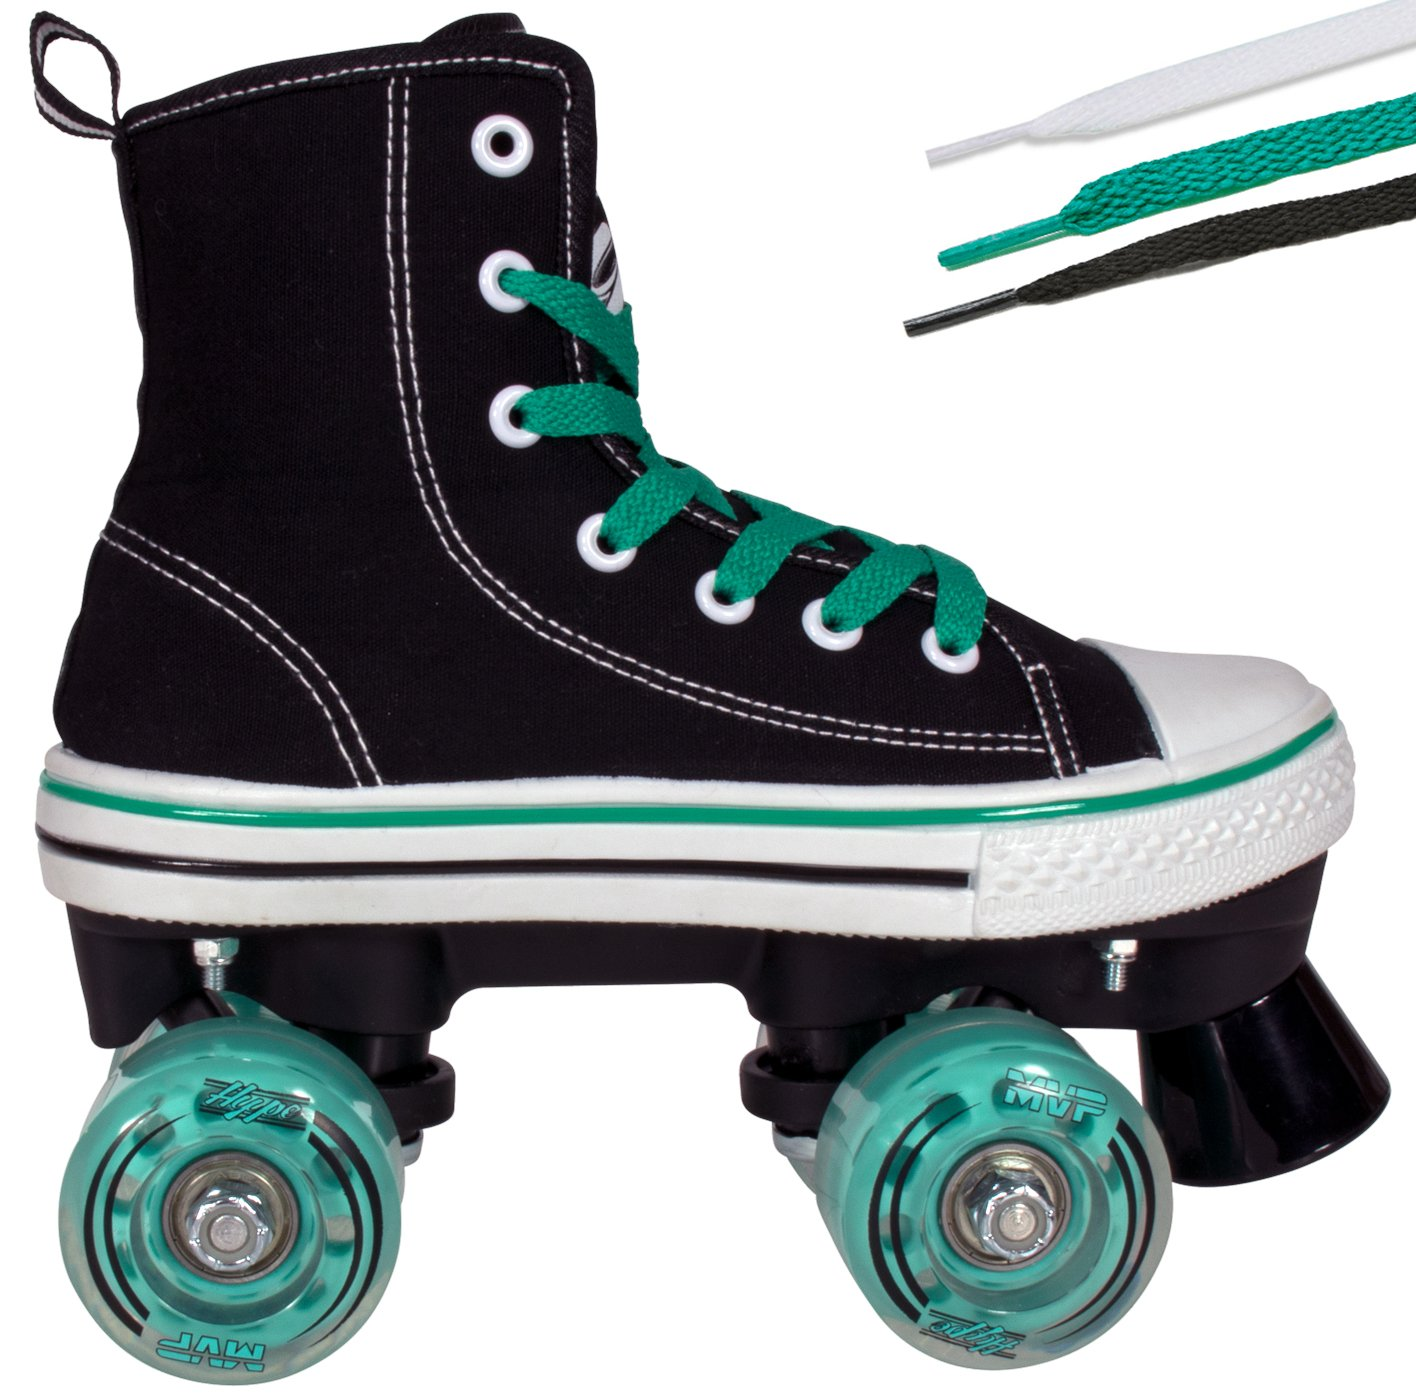 Hype Roller Skates for Girls and Boys MVP Kid's Unisex Quad Roller Skates with High Top Shoe Style for Indoor/Outdoor (Black & Teal, 5)